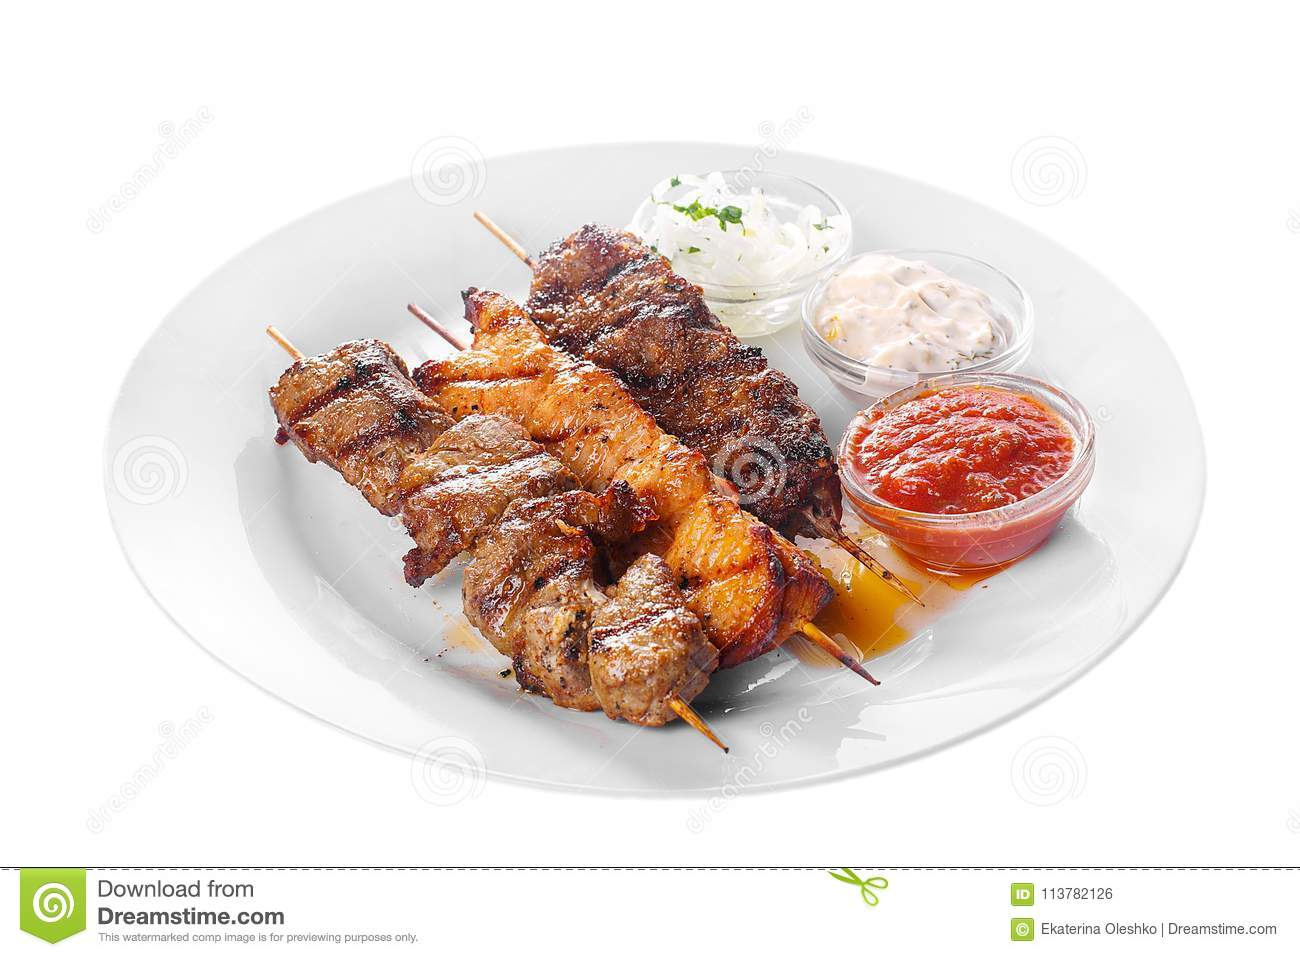 How to cook shish kebab from chicken in mayonnaise